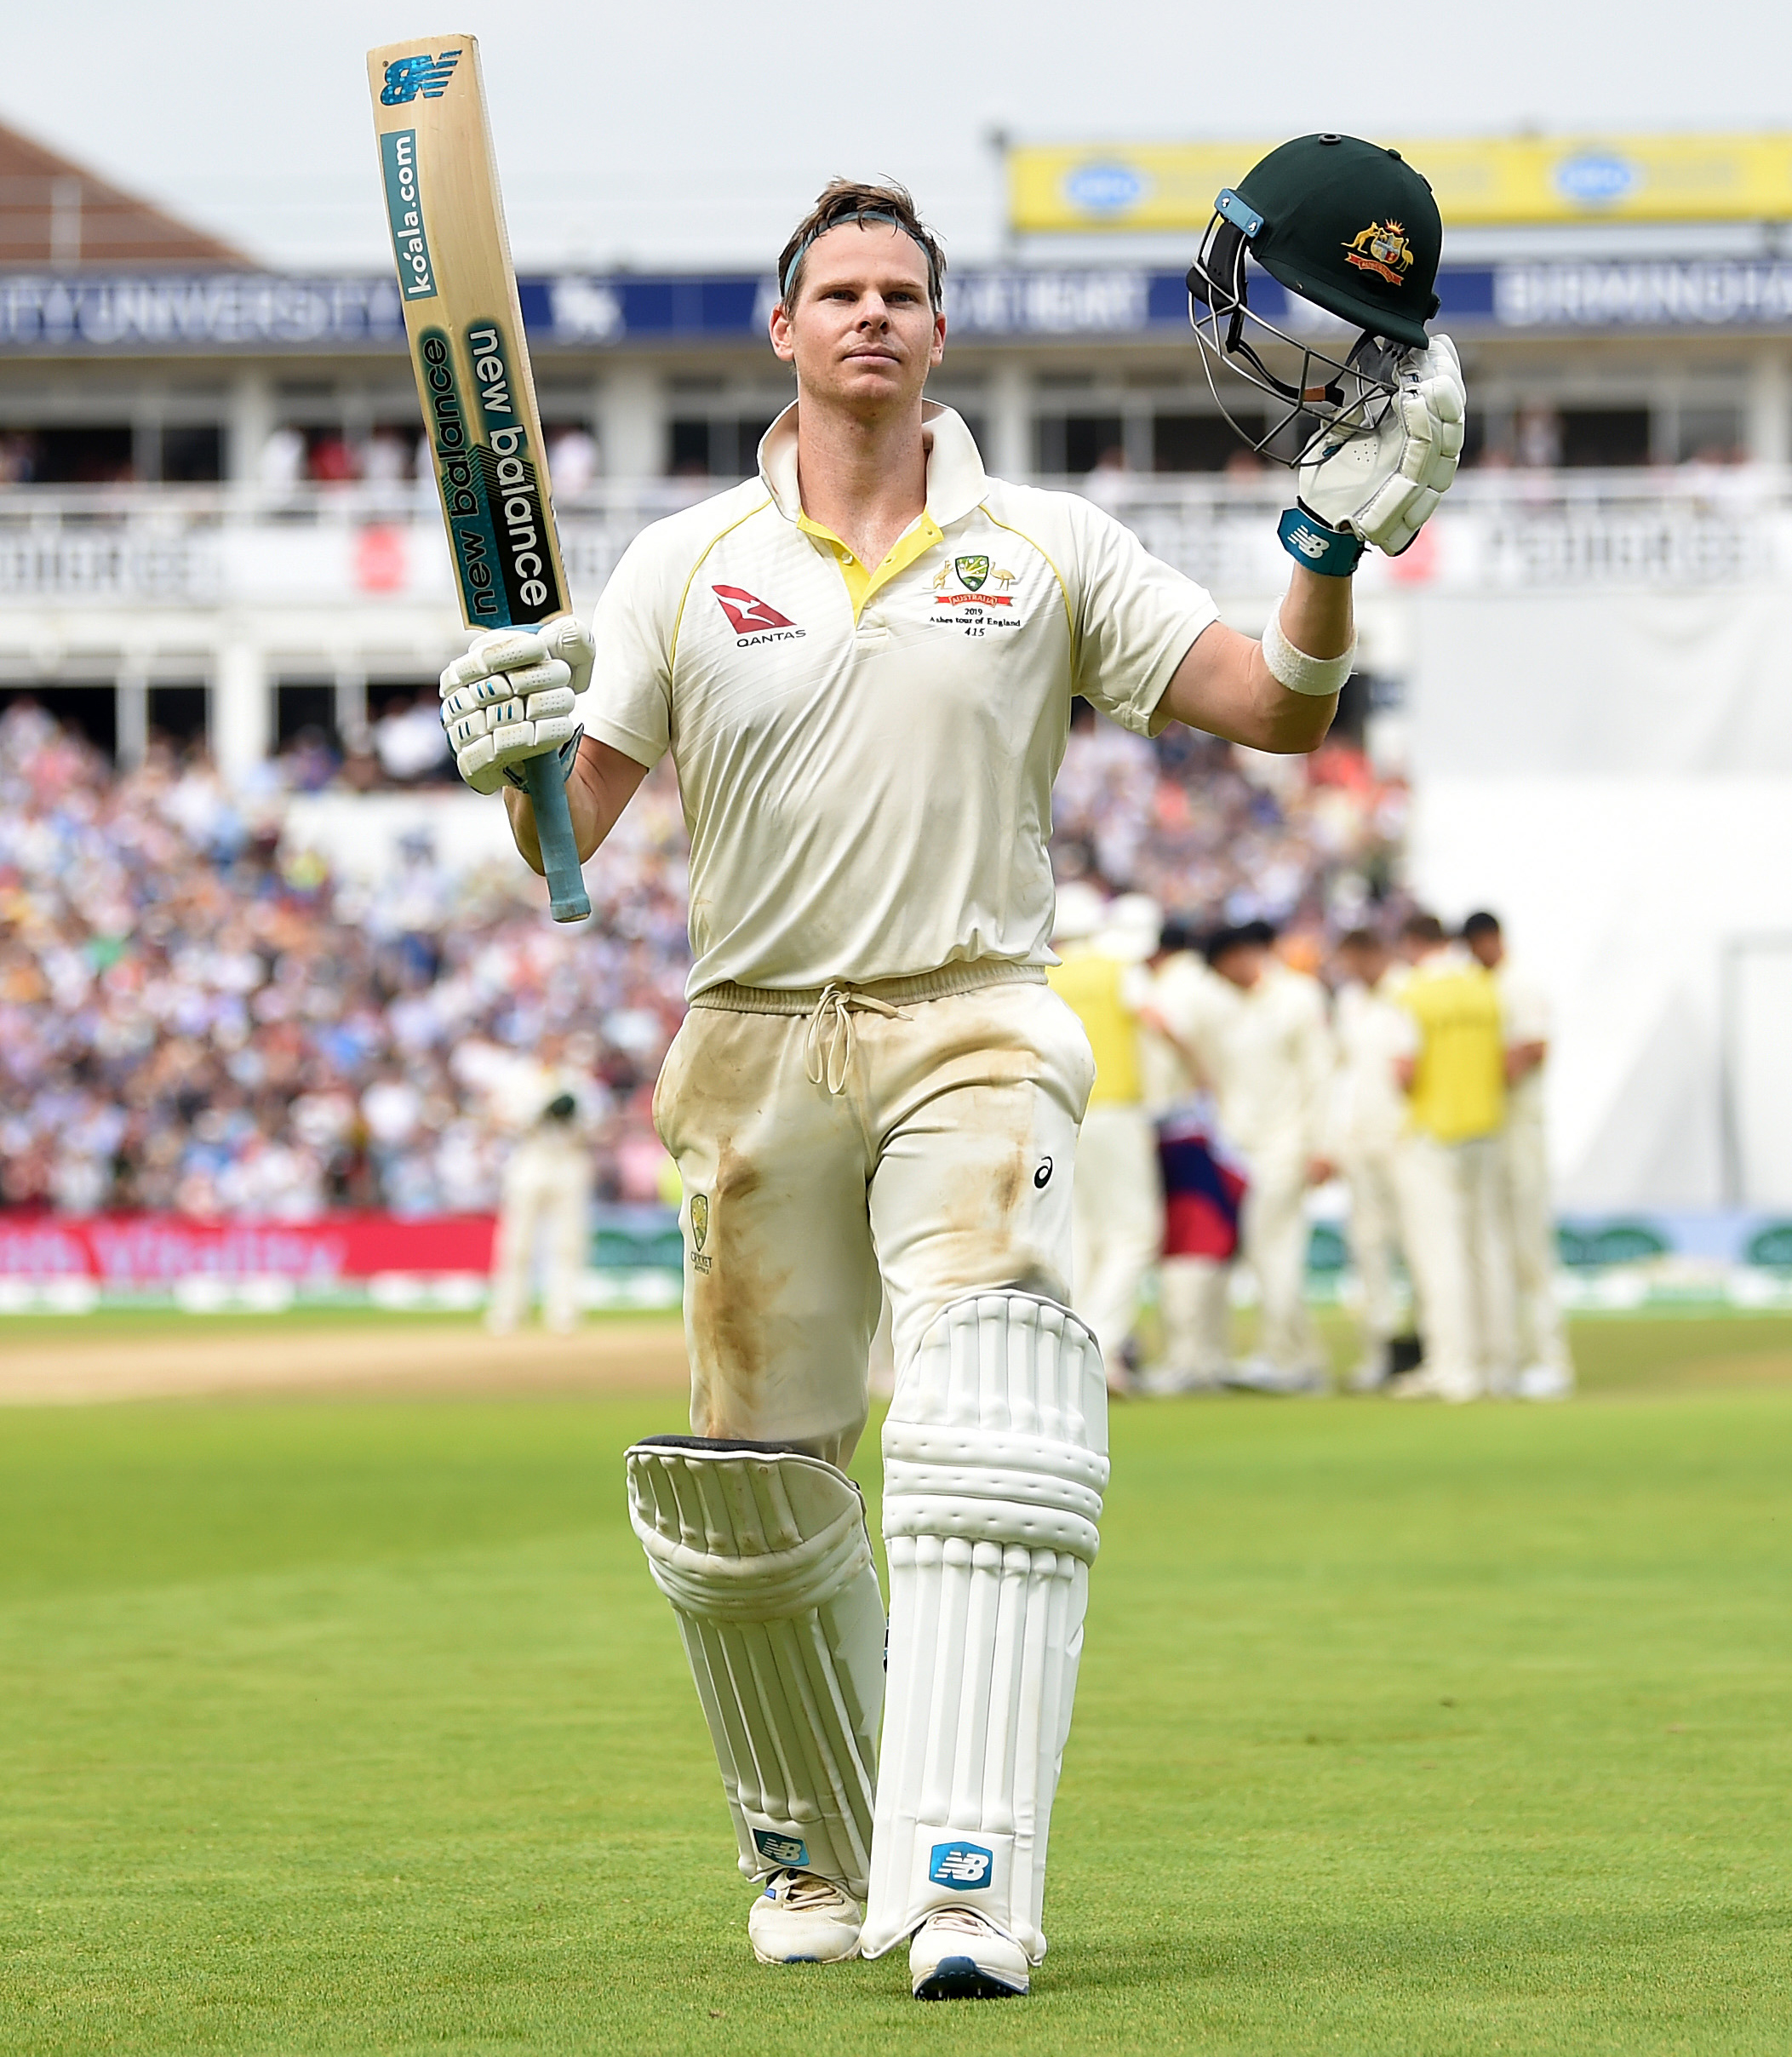 Smith soaks up applause after his second ton of the Test // Getty